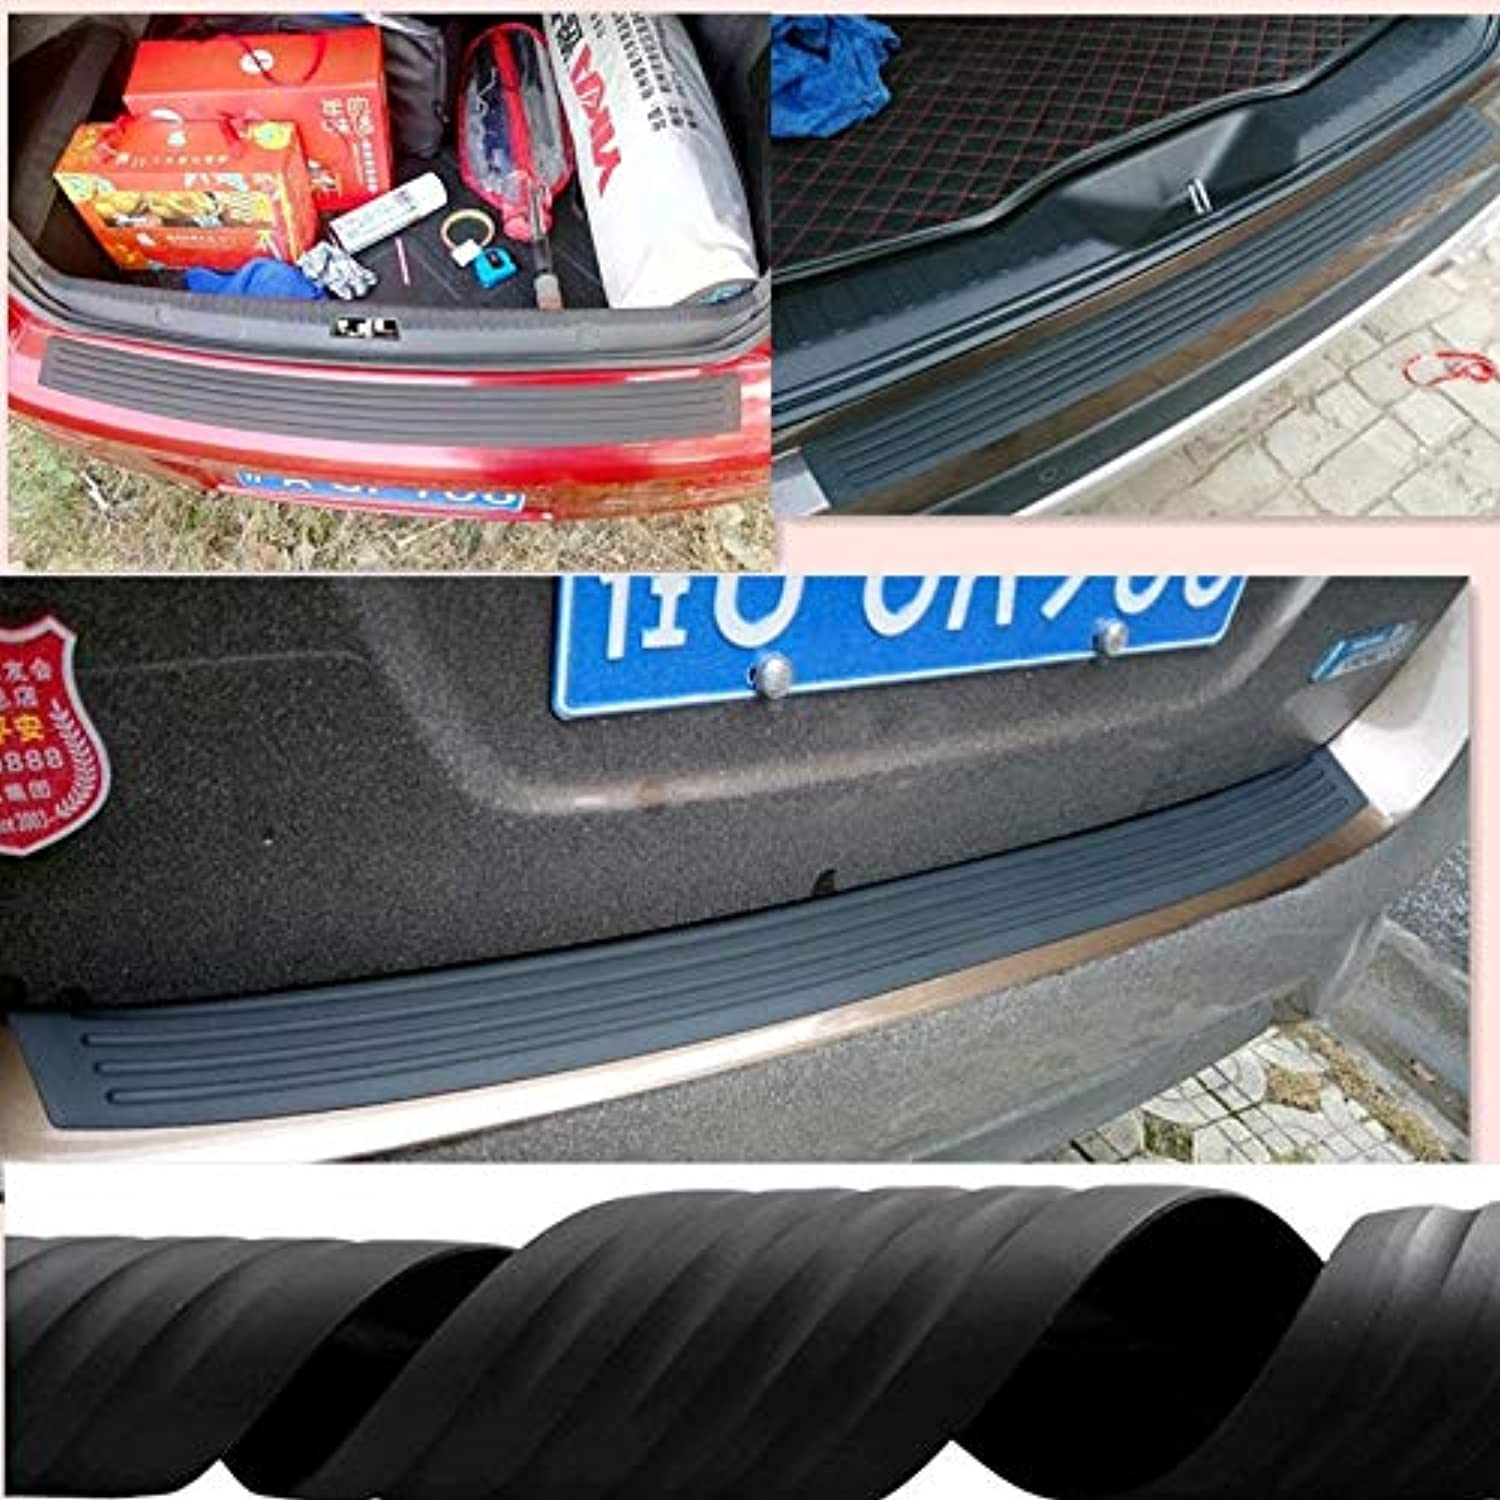 Car Styling Rear Predection Rubber Sticker for Toyota Cgoldlla RAV4 Yaris Honda Civic Accord Fit CRV Nissan Accessories